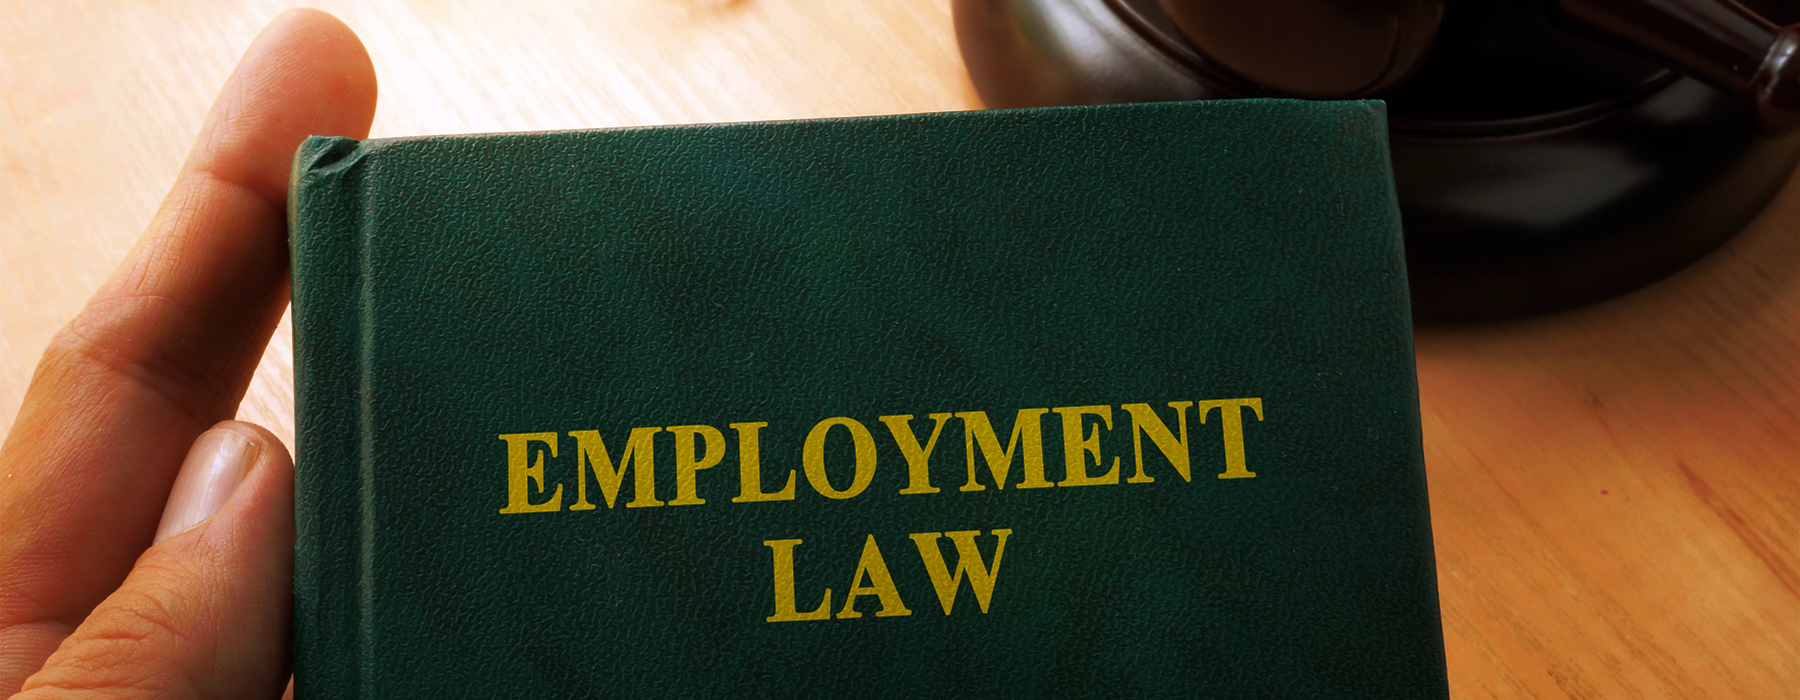 Employment Practices Liability Insurance